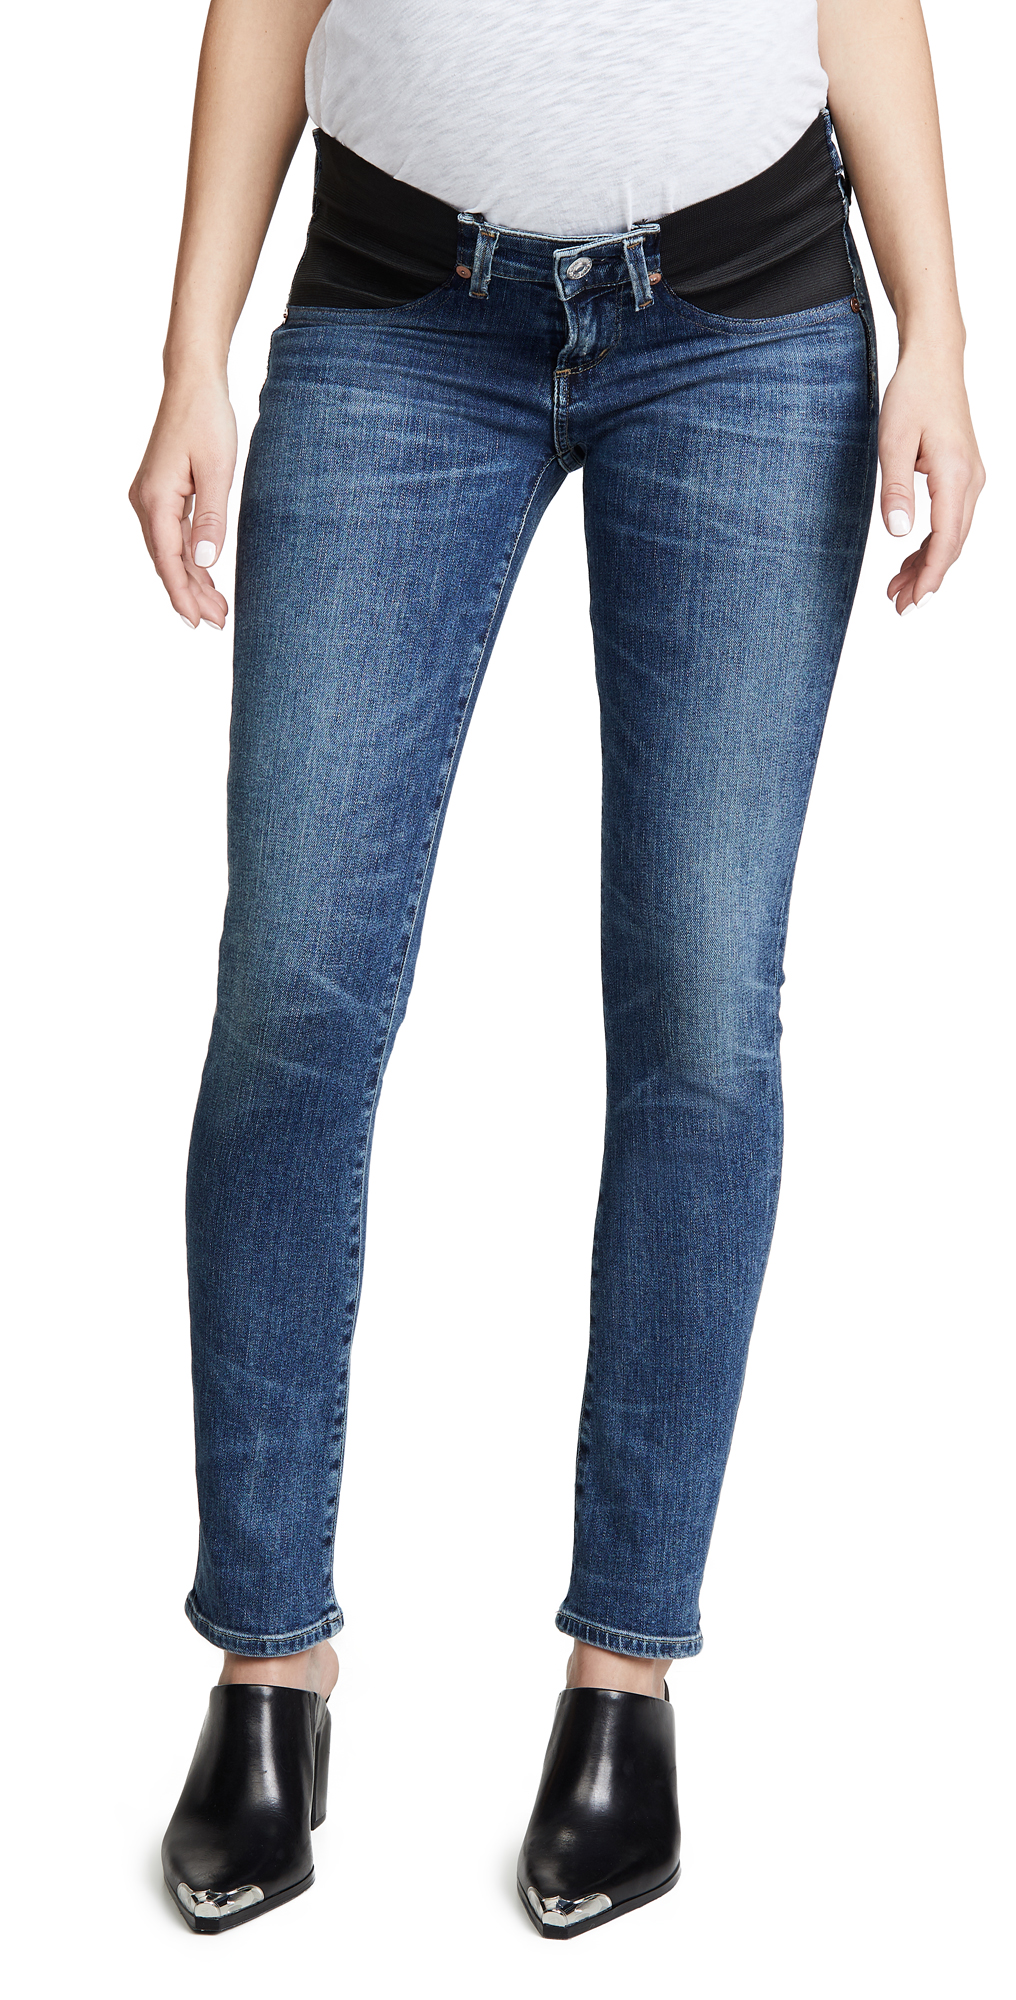 Citizens of Humanity Maternity Racer Below the Belly Jeans